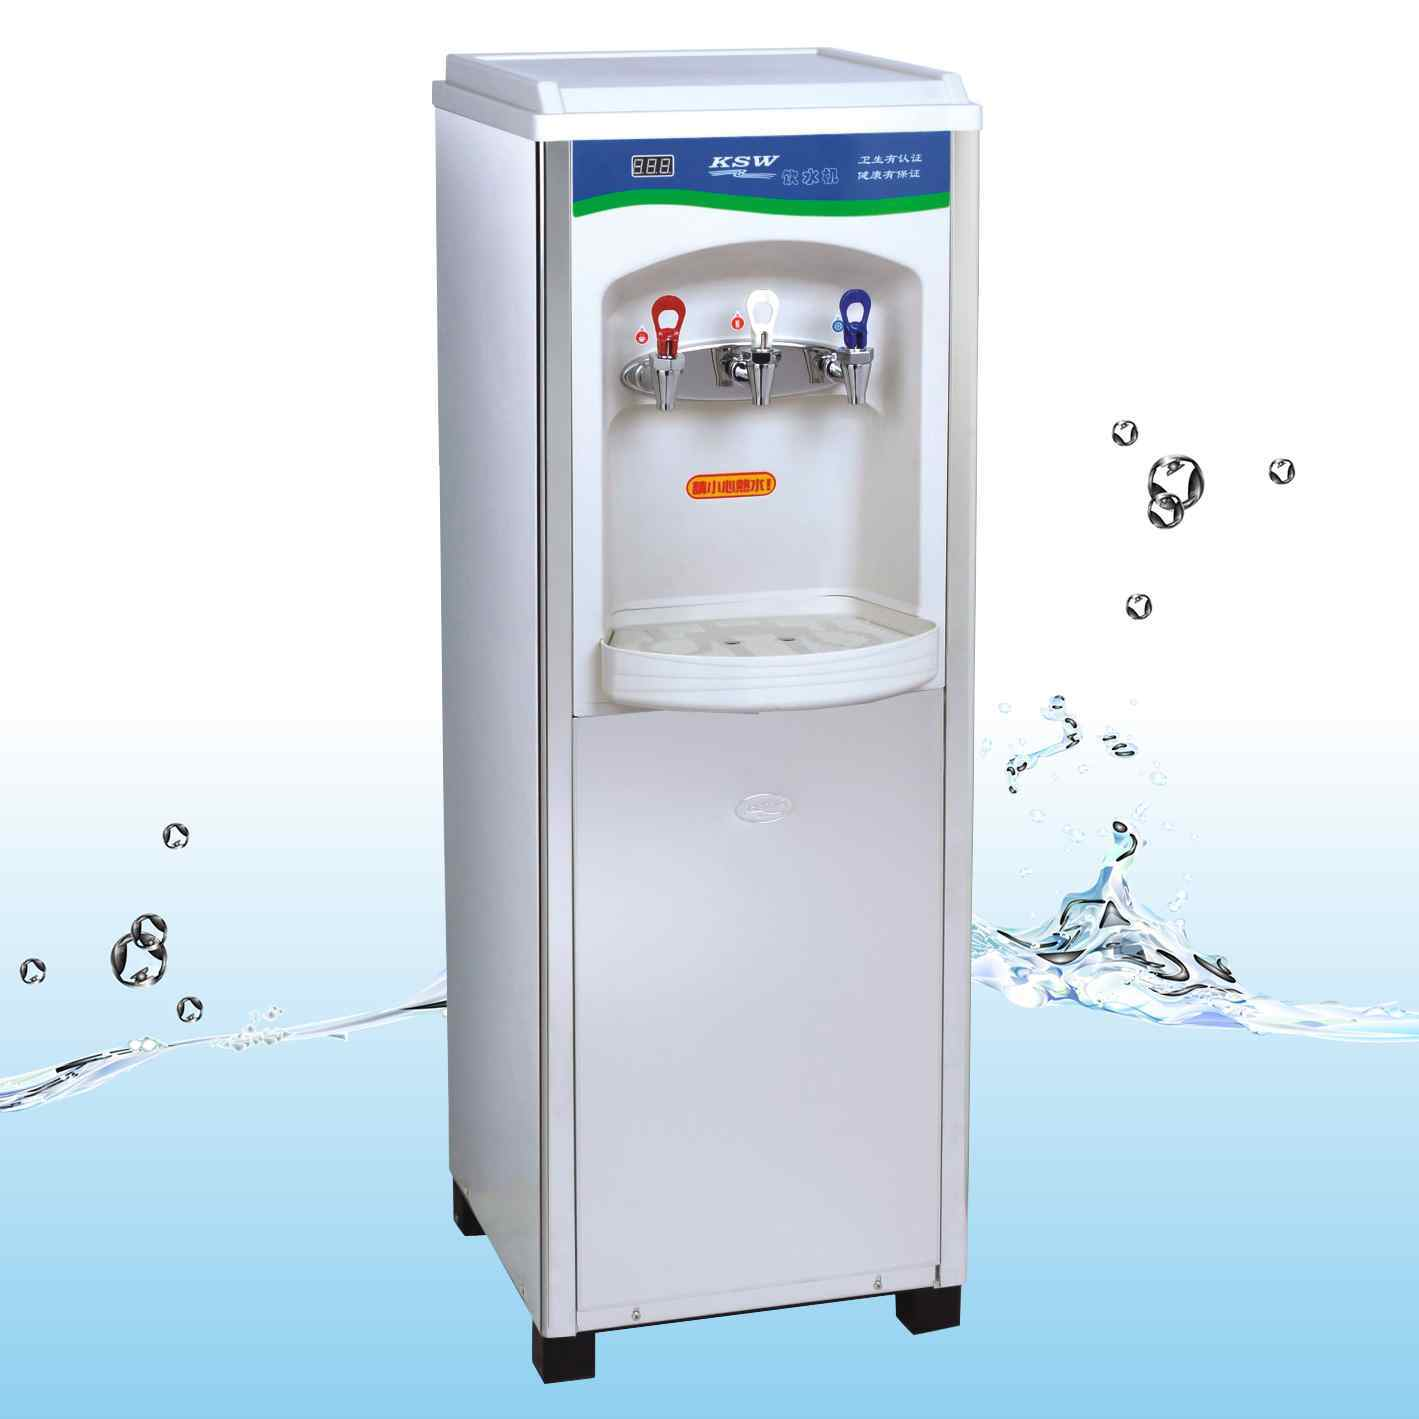 Where To Get Reverse Osmosis Water China Reverse Osmosis System Water Cooler China Reverse Osmosis